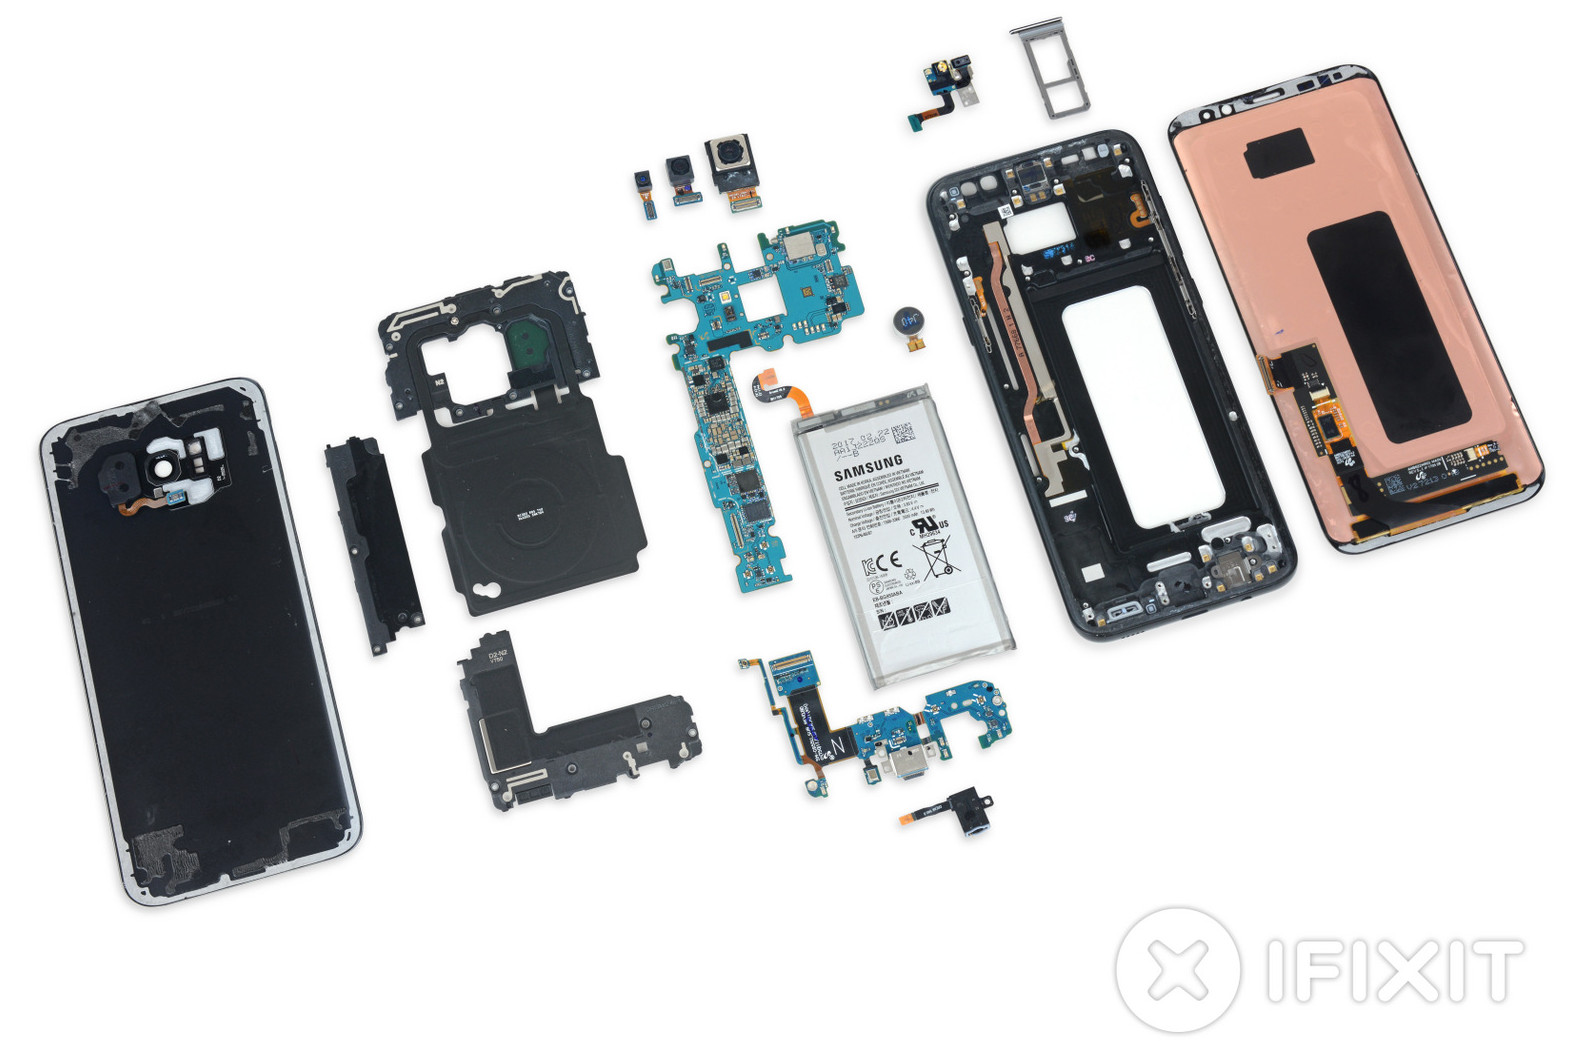 Iphone S Plus Reparatur